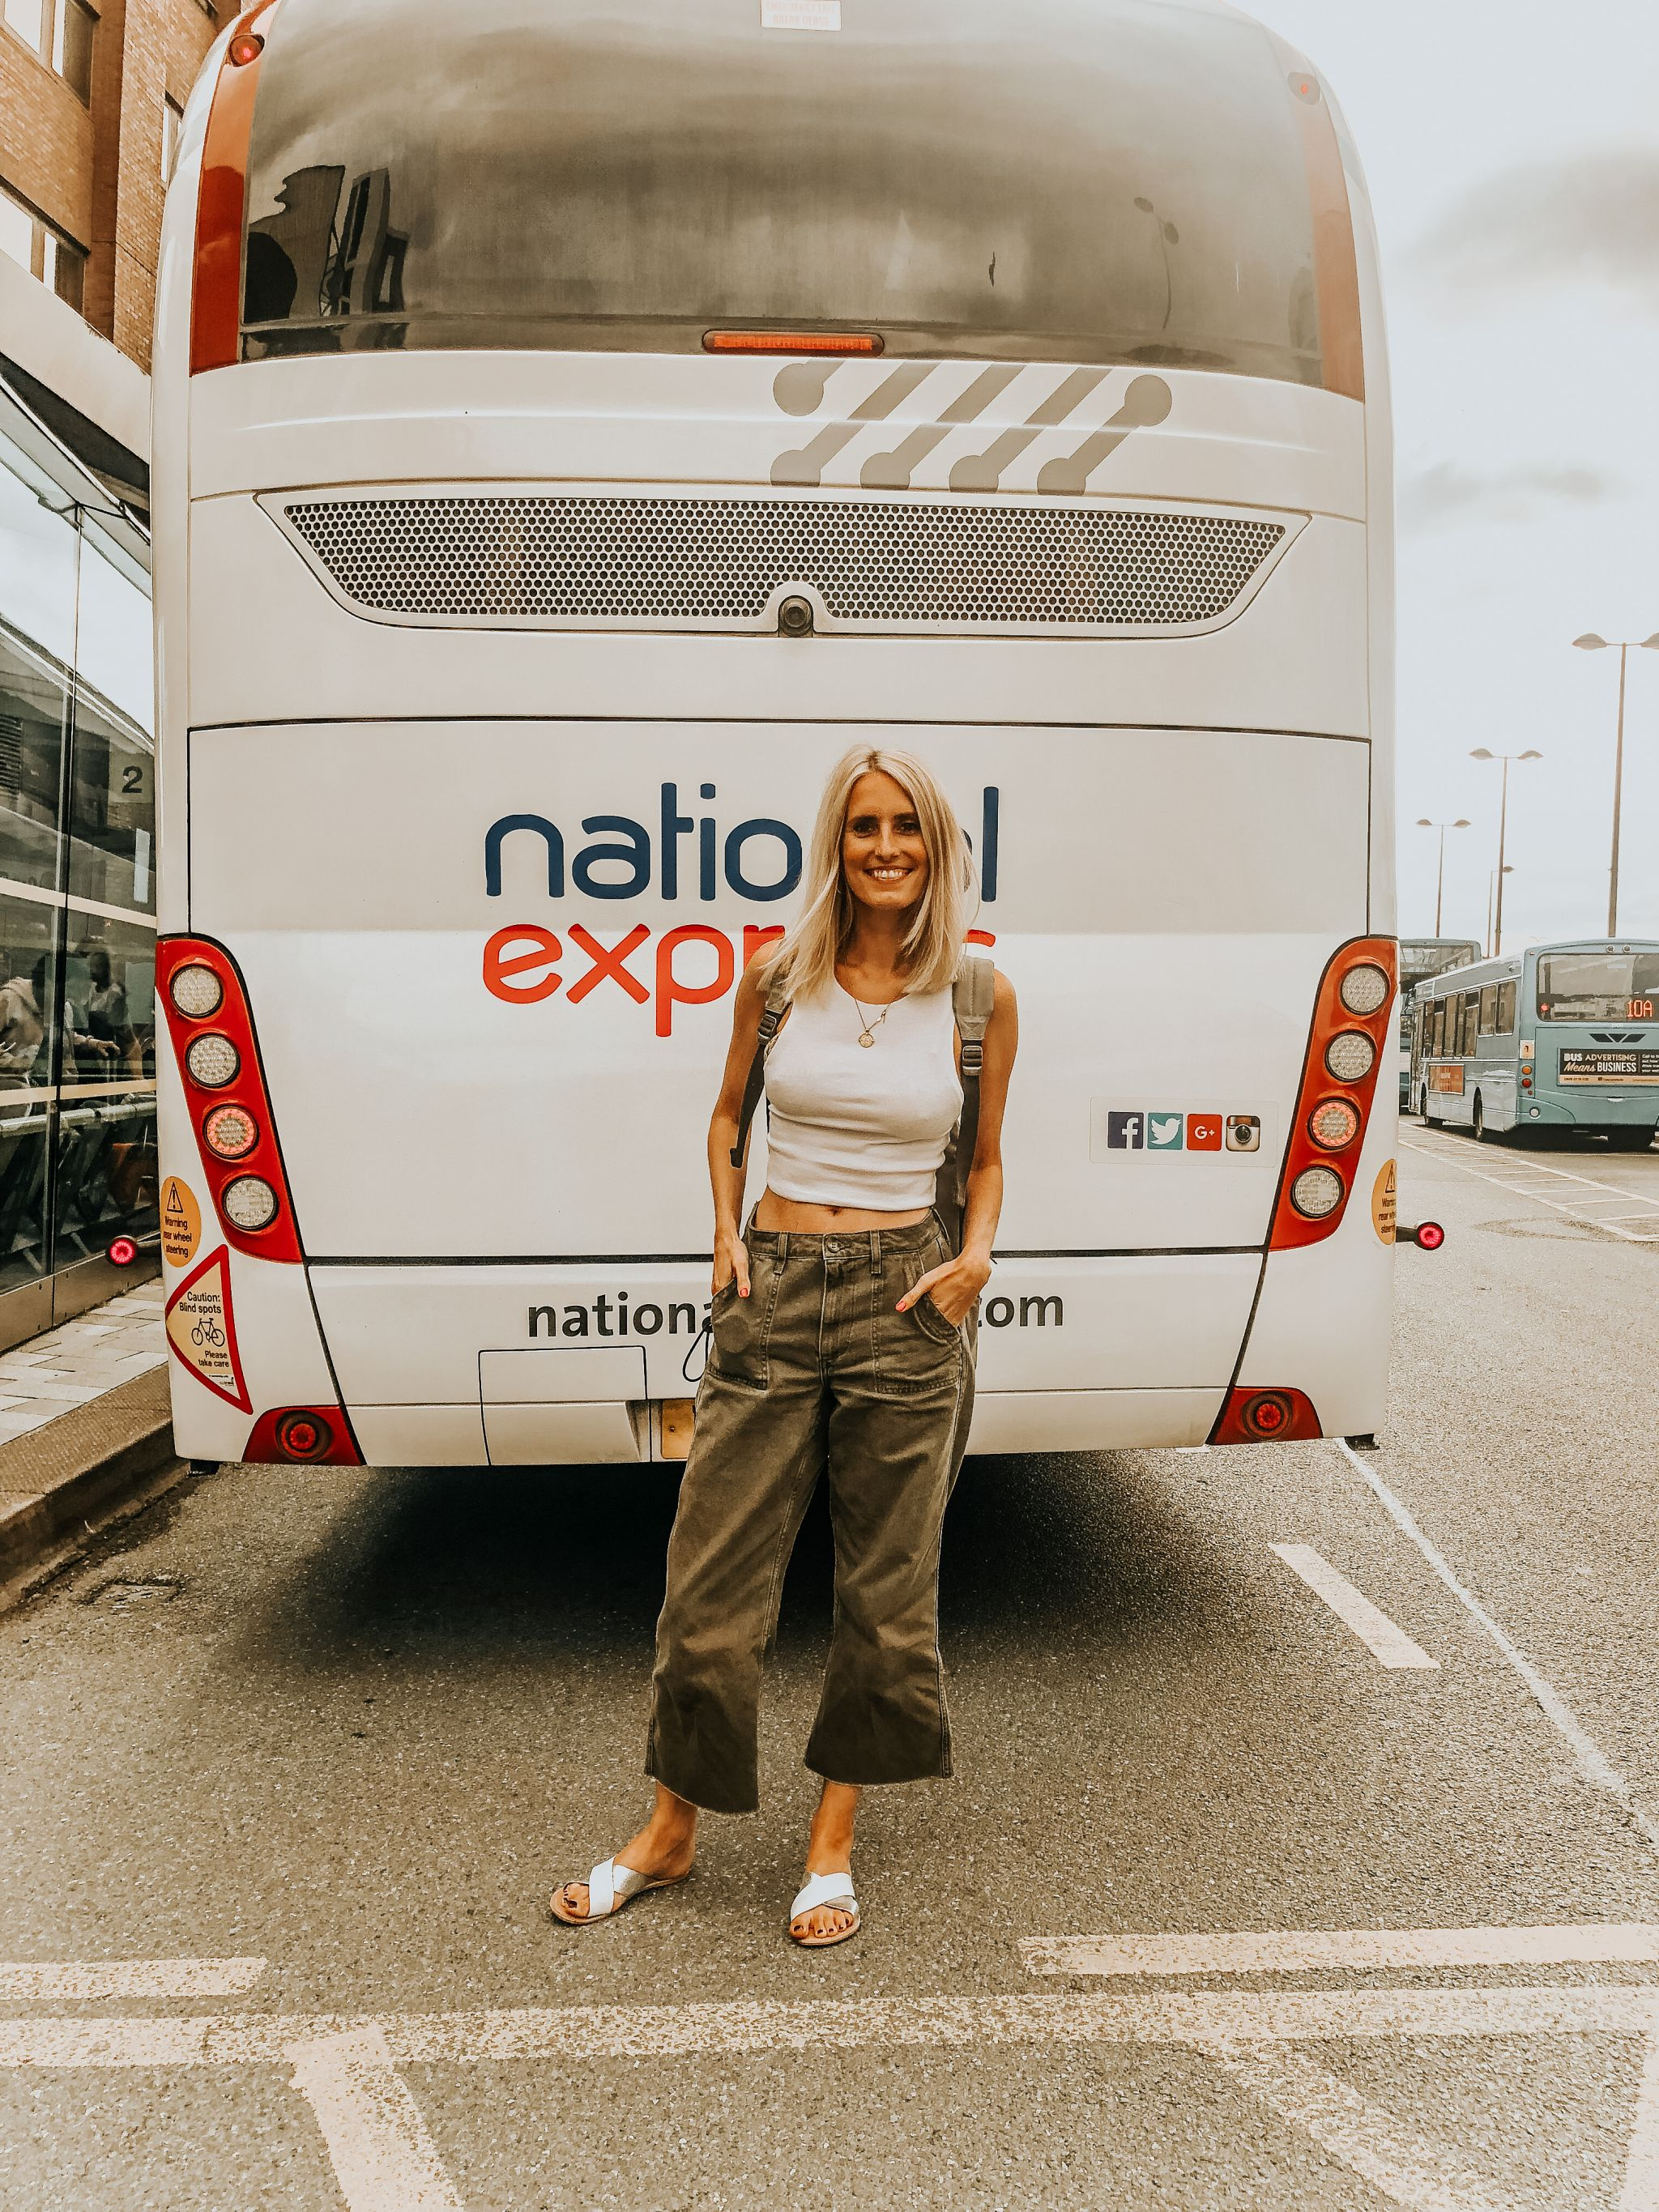 national express - SOPHIE EGGLETON (1 of 1)